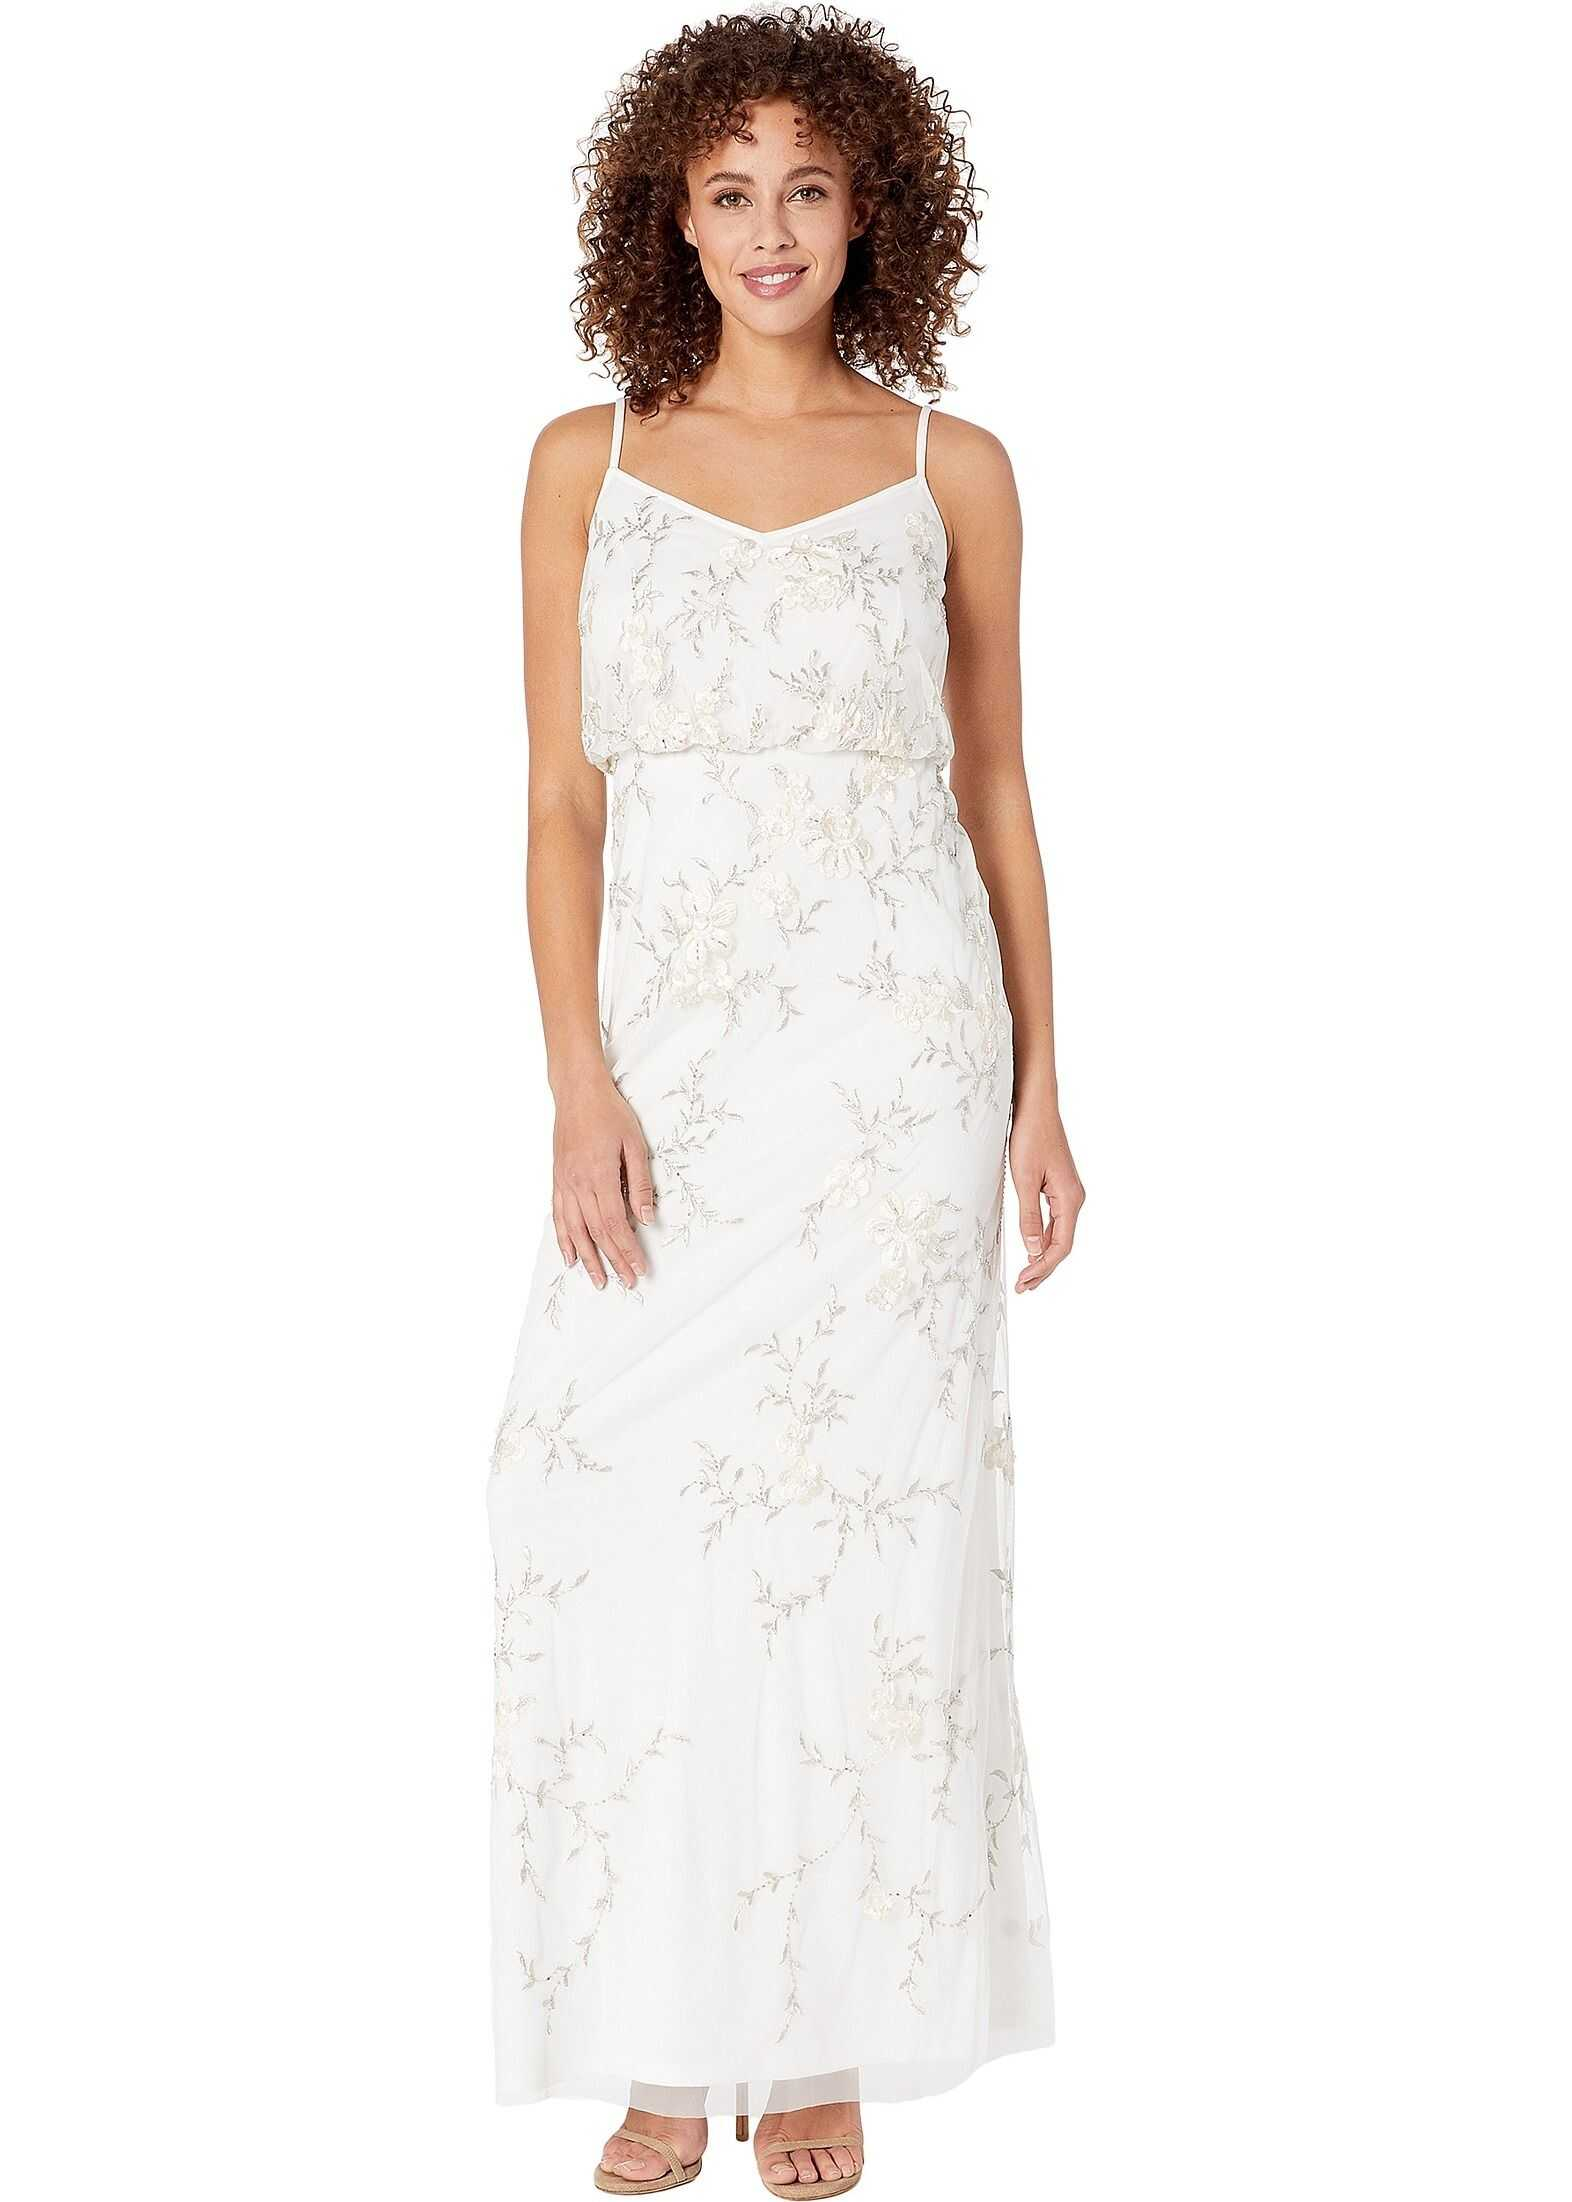 Adrianna Papell Beaded Embroidered Floral Evening Gown Ivory